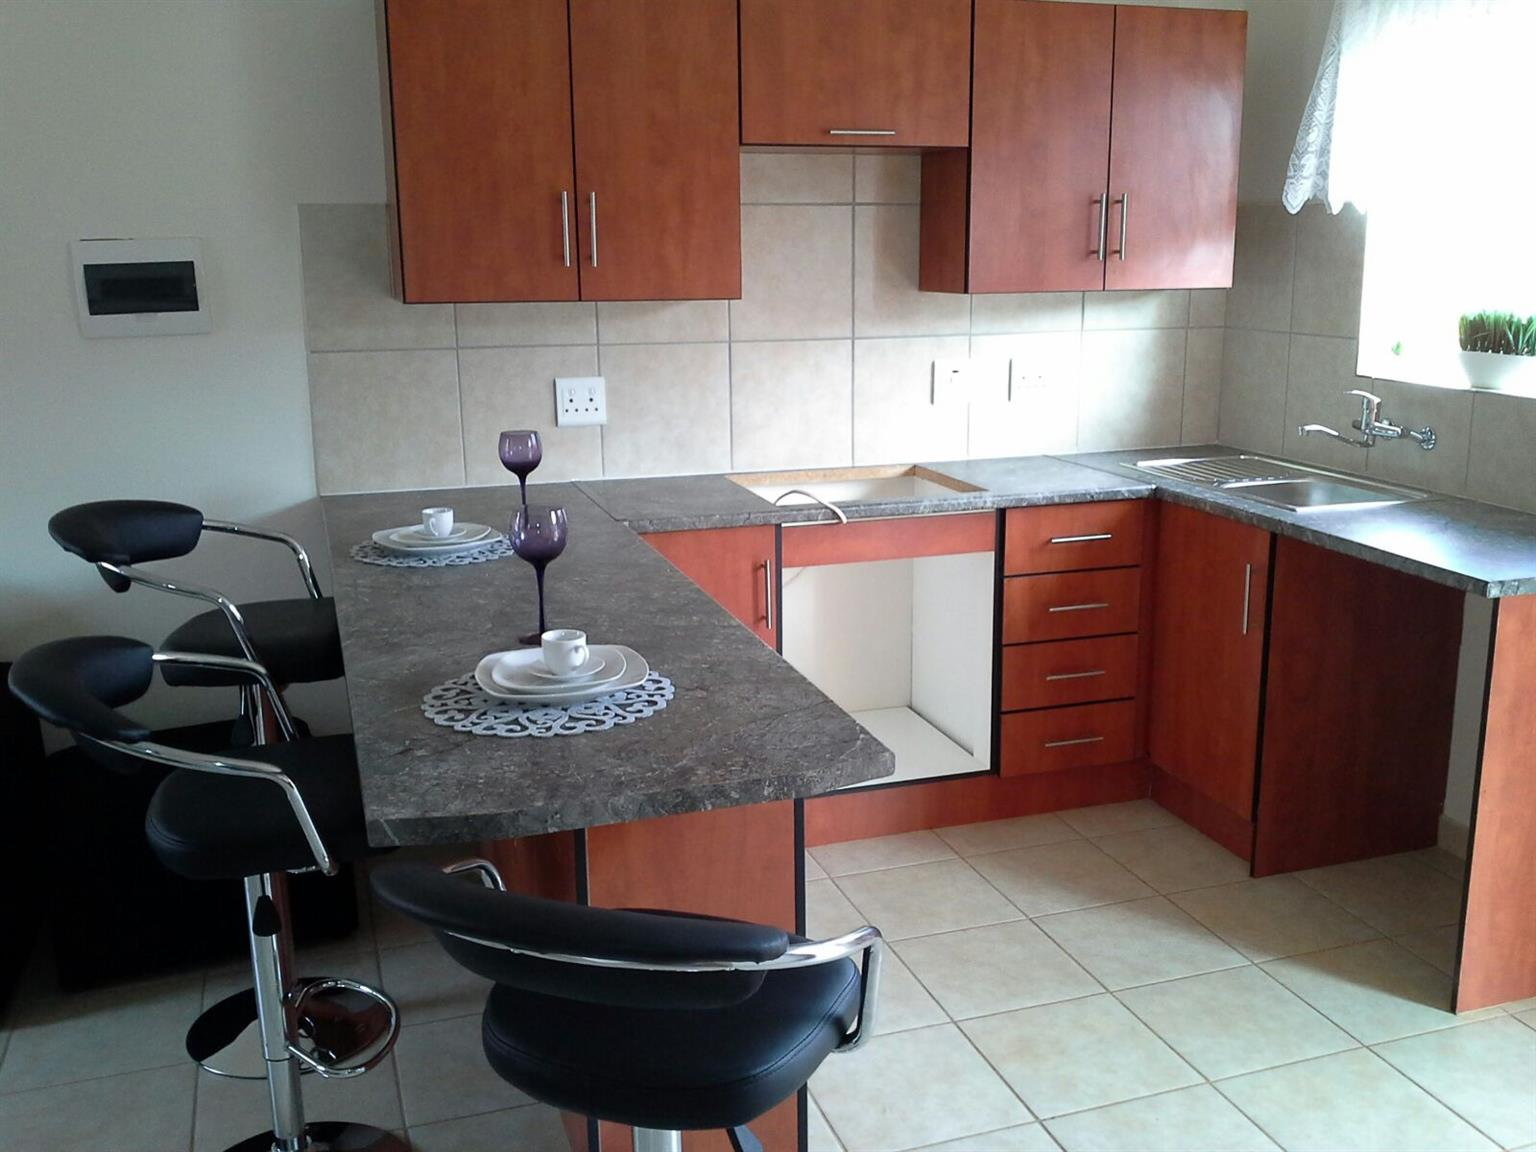 3 Bedroom Family Home in Secure Estate. Buy now before Price Increase and Save up to R20,000